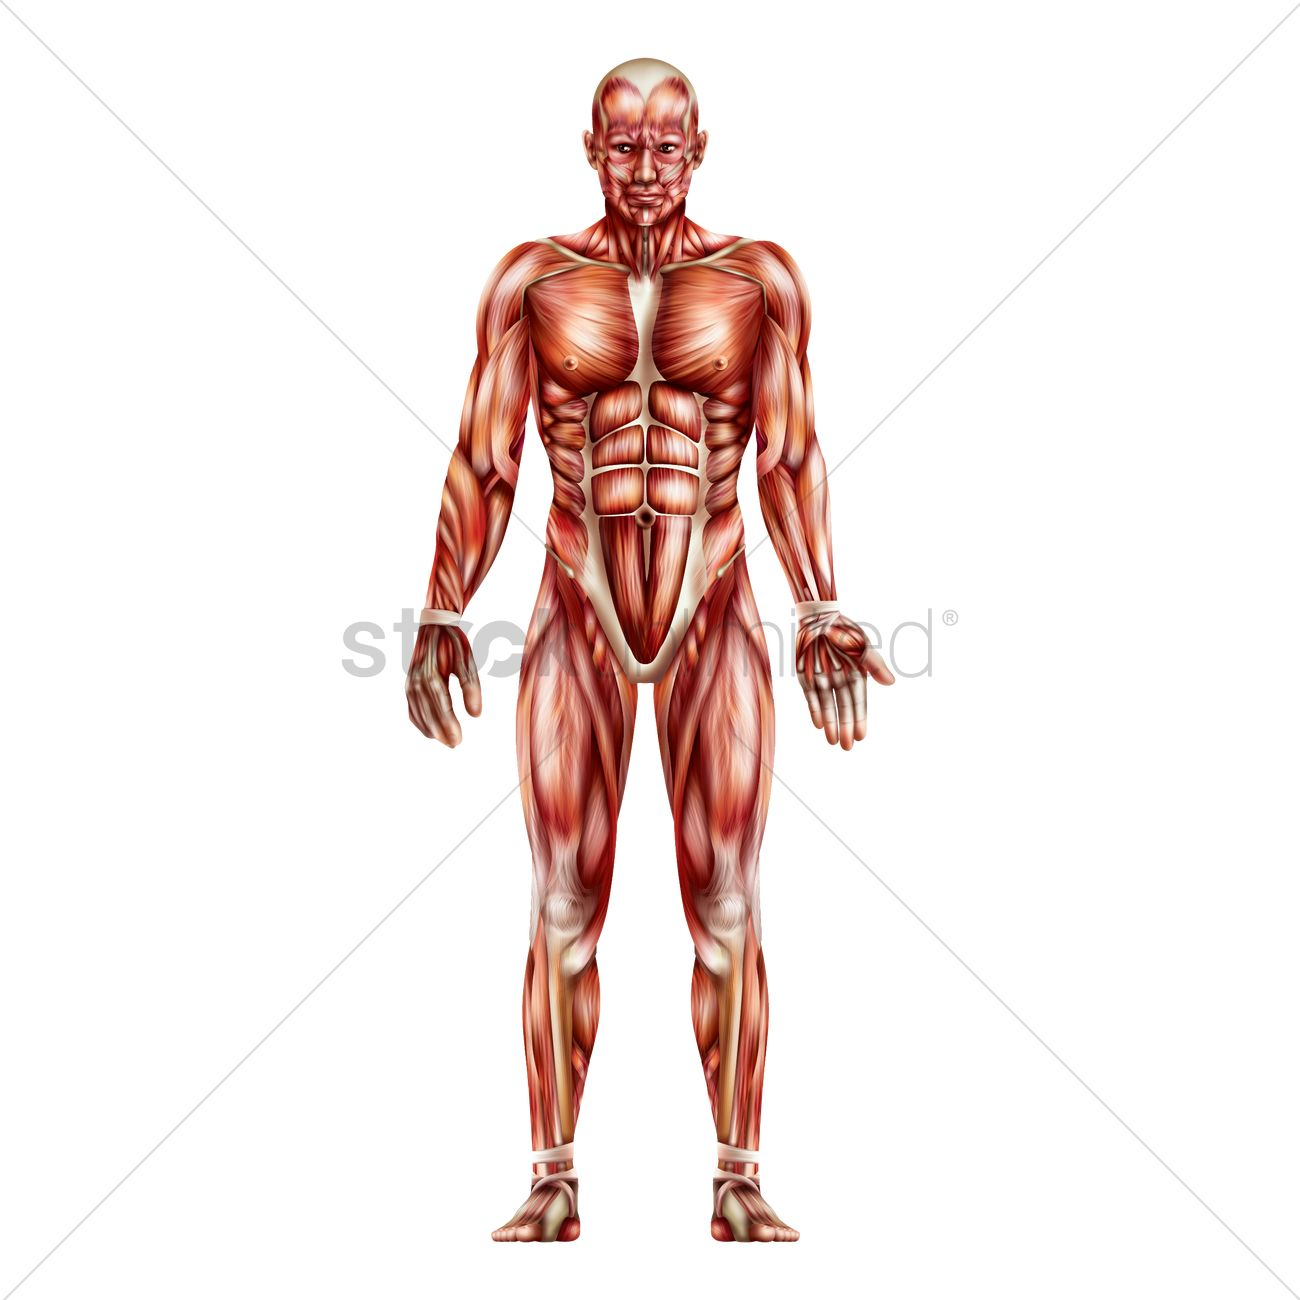 Anatomy Of Human Muscular System Vector Image 1814983 Stockunlimited